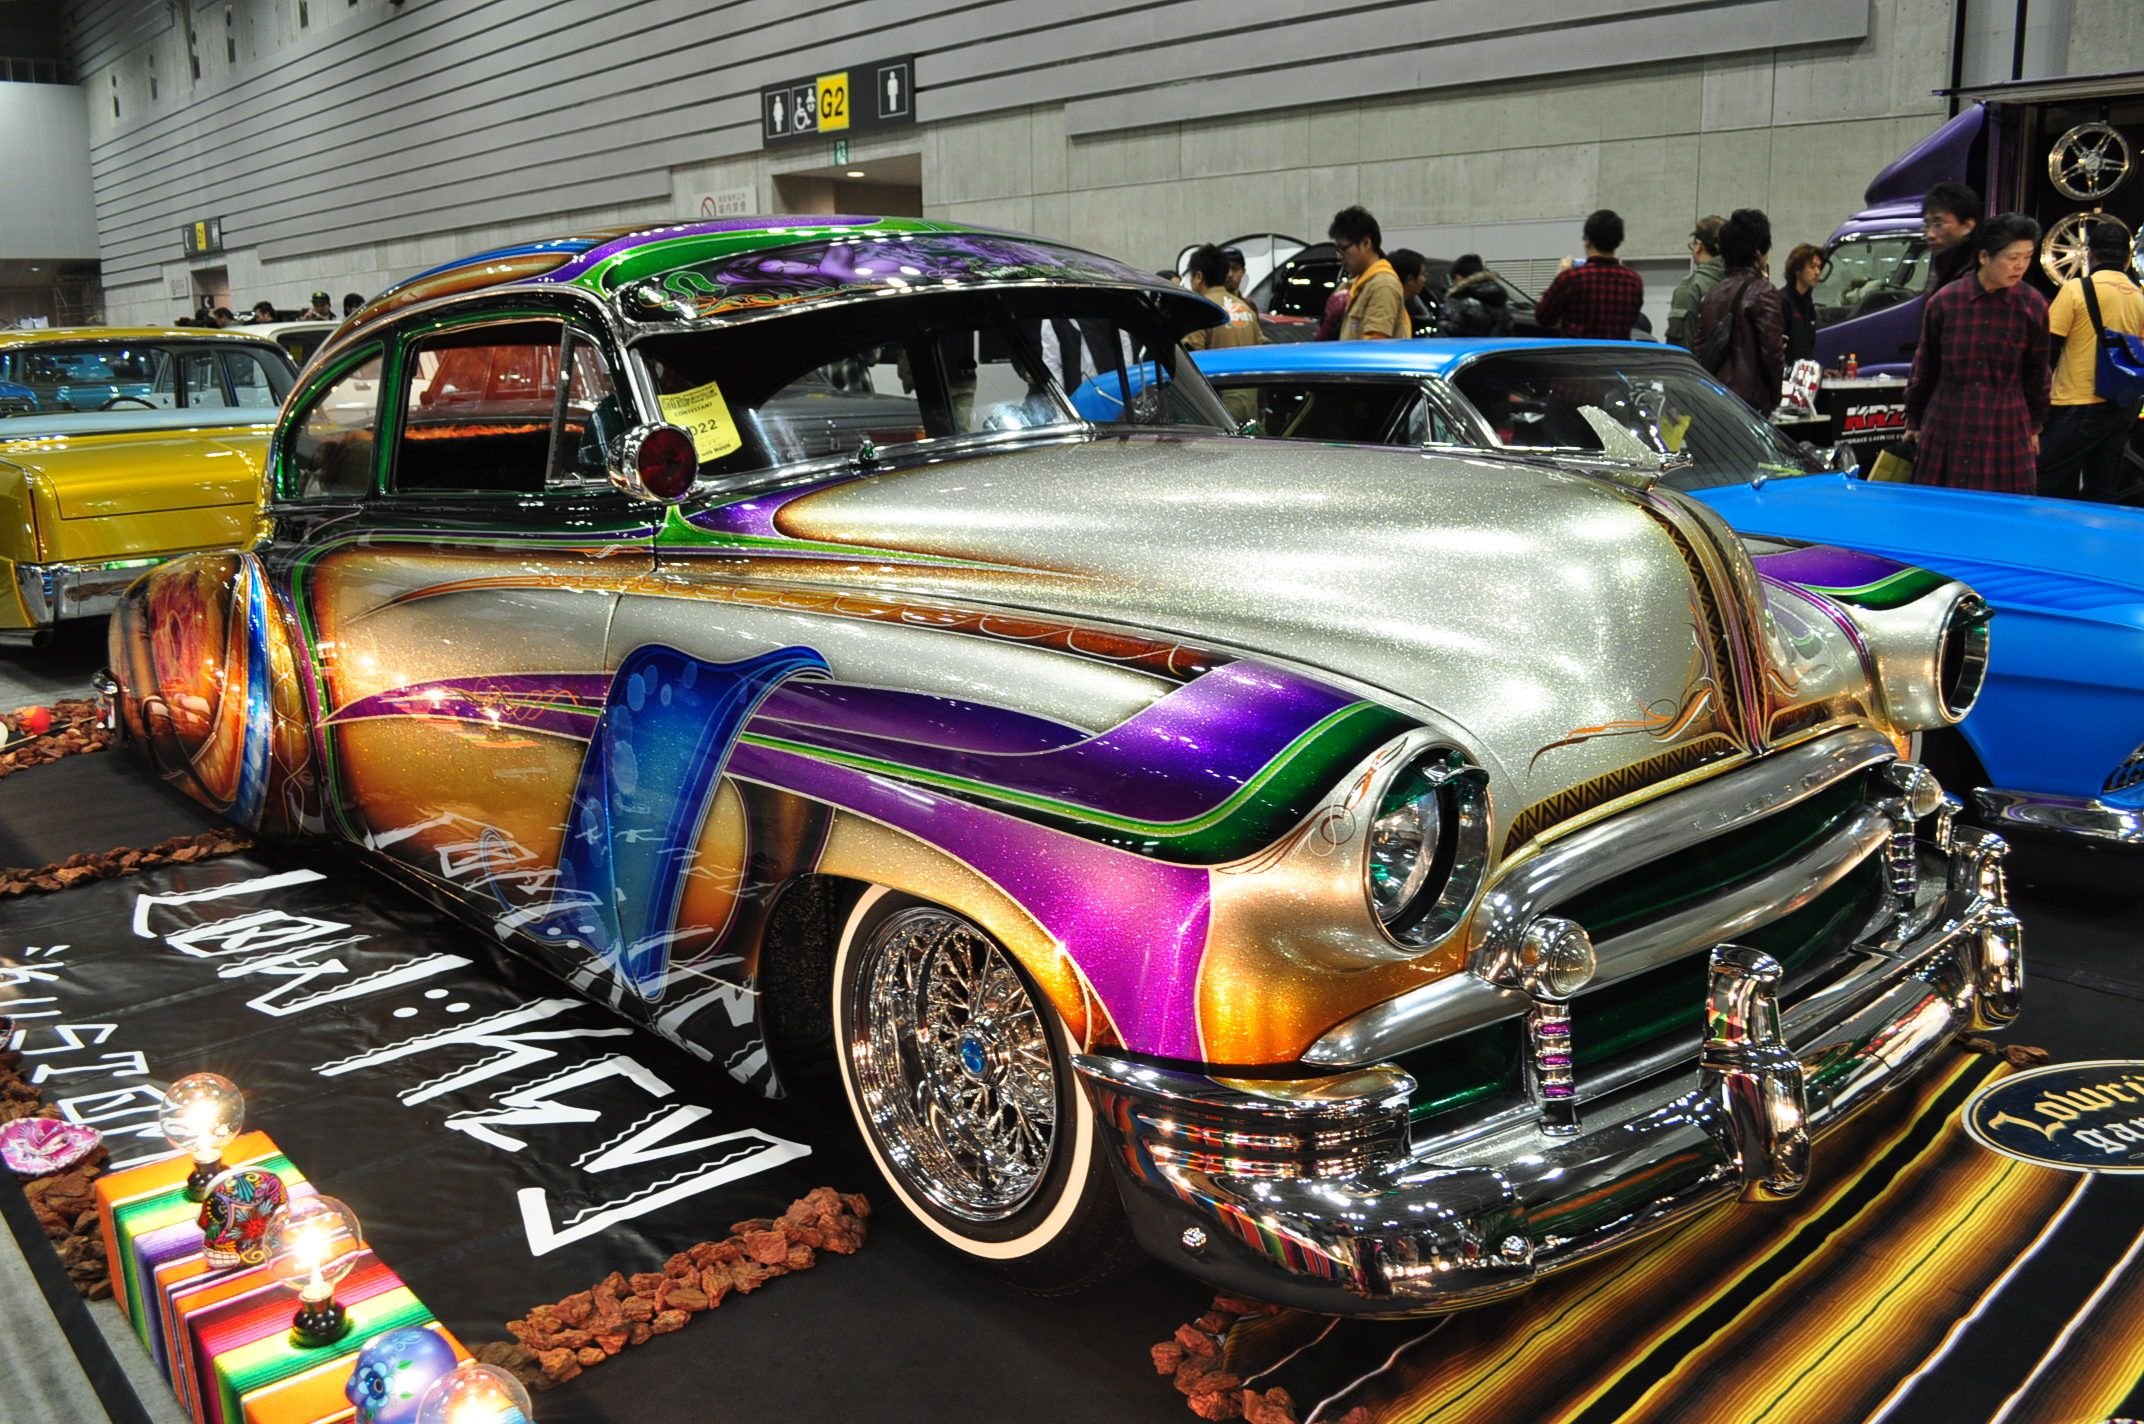 Jdm lowrider in japan with custom paint job they ve embraced the chicano style which uses a lot of intricate patterned paint jobs most lines o